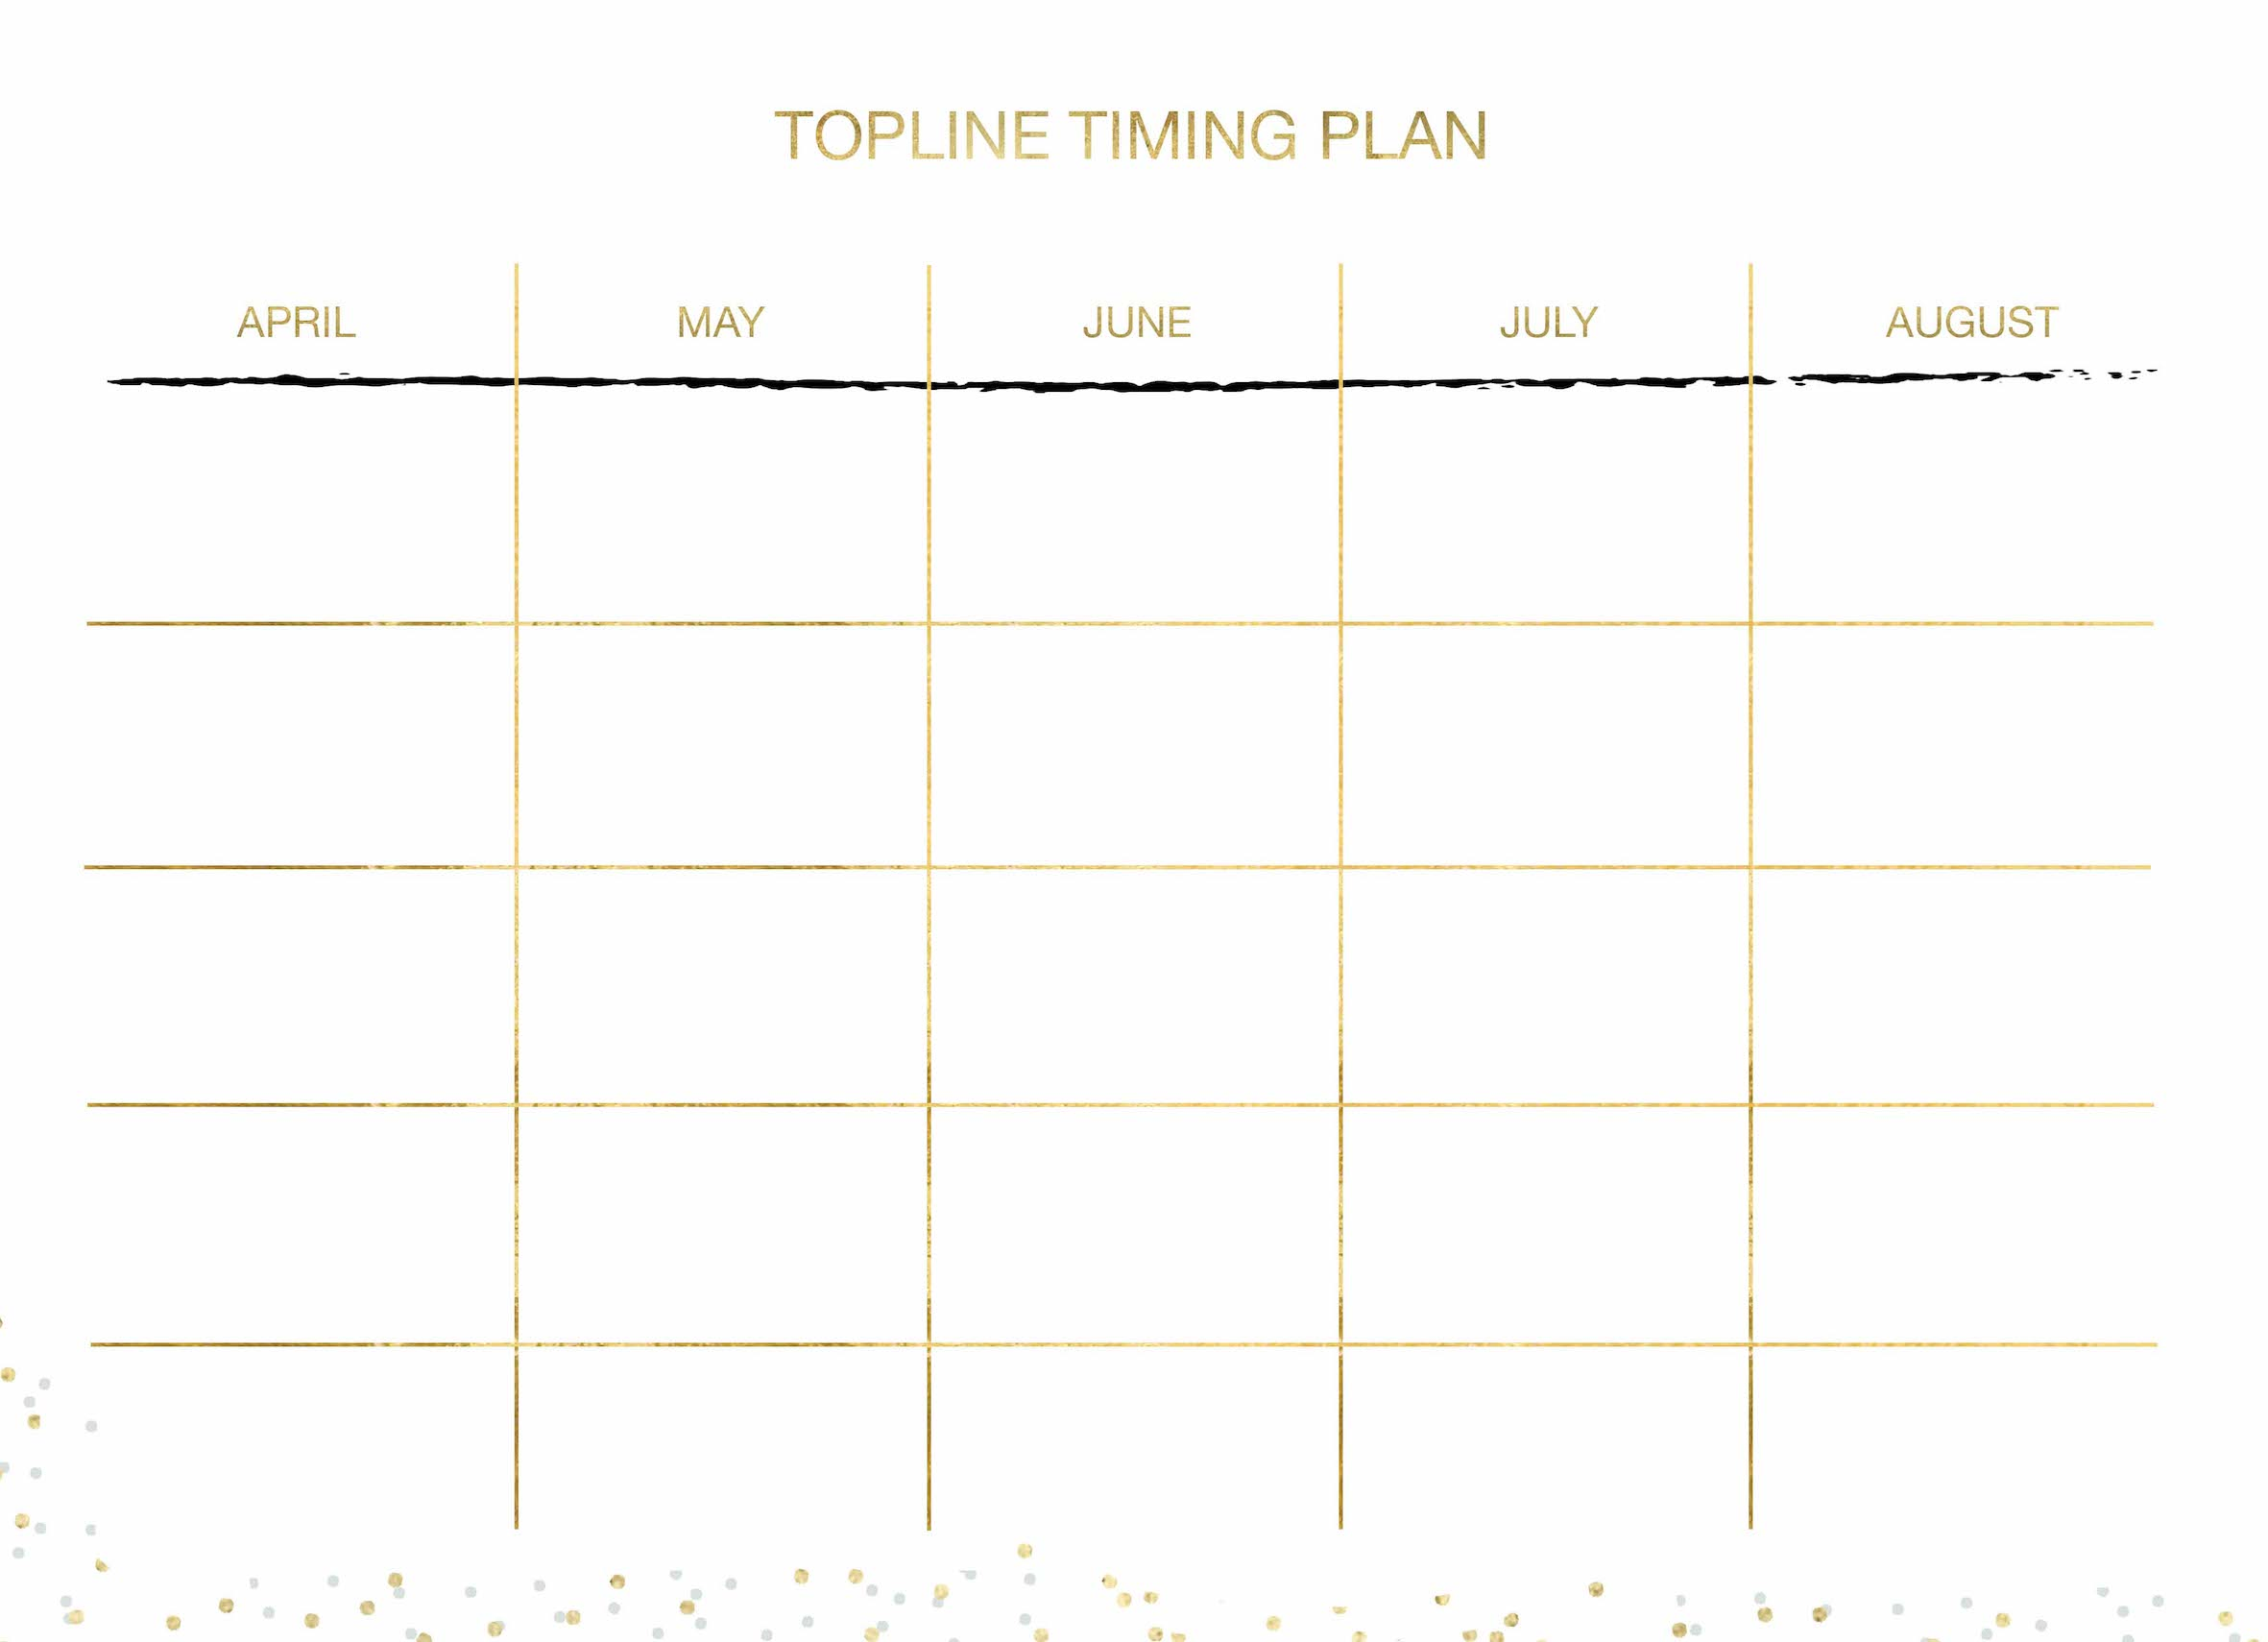 Topline Timing plan